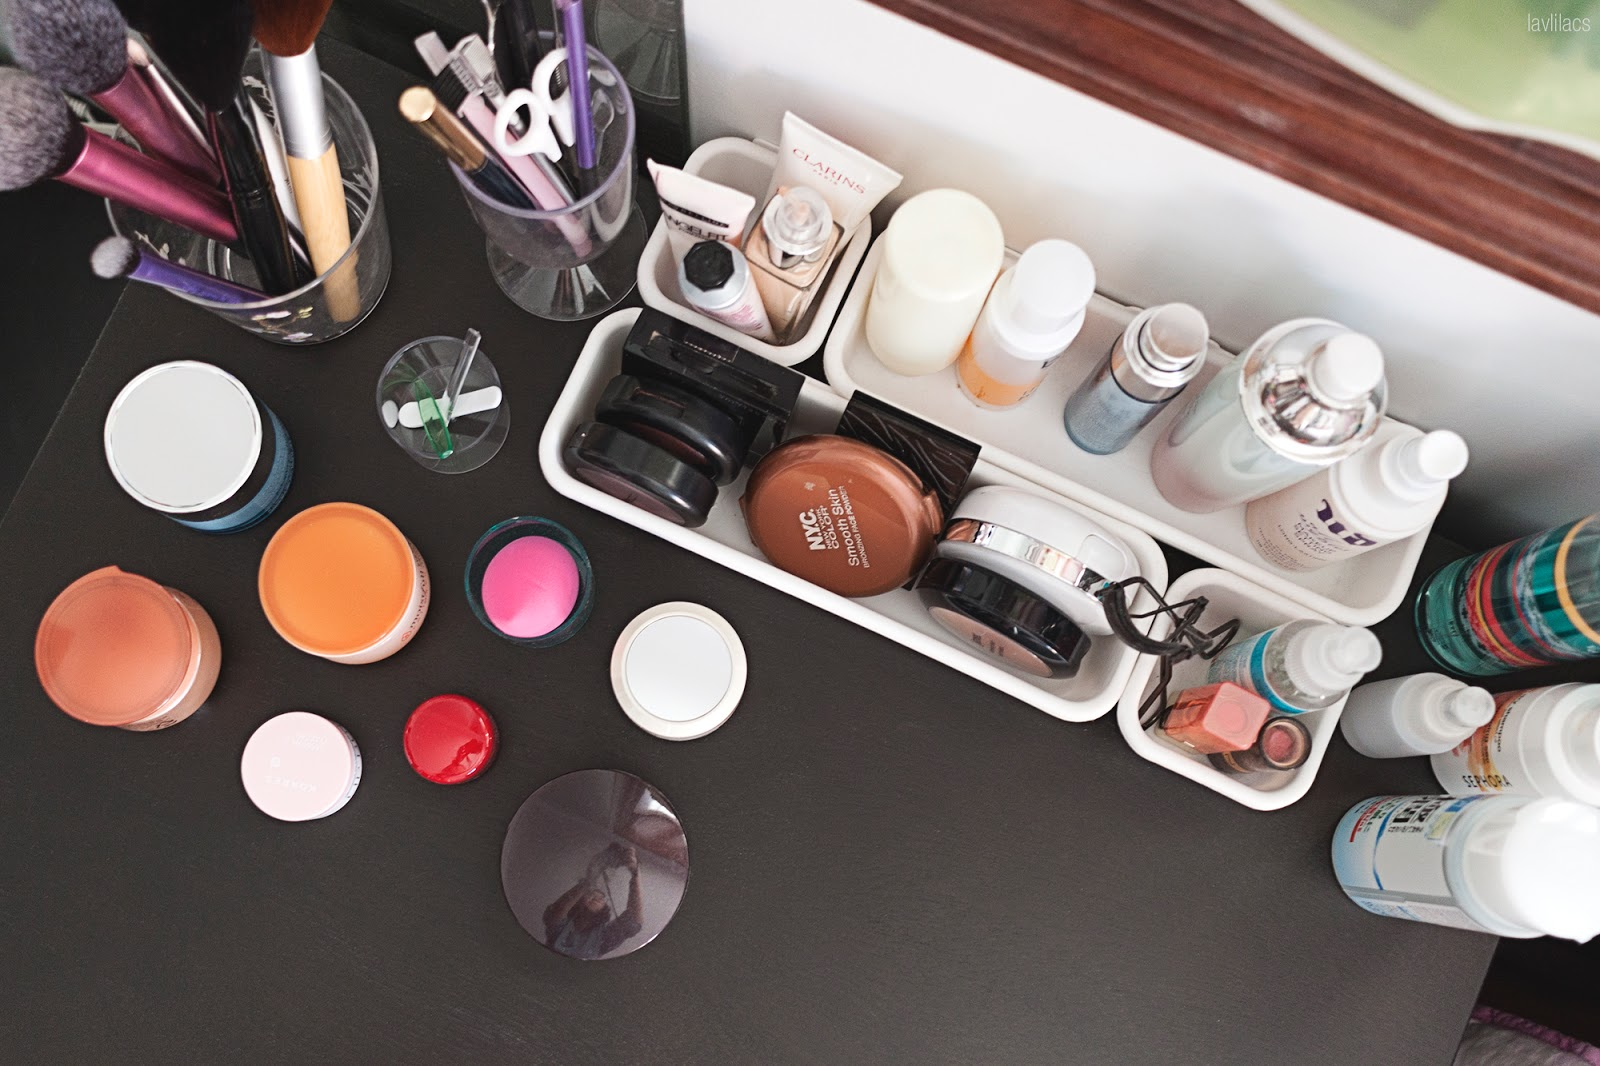 Daily makeup skincare products on top of bedside table aerial view